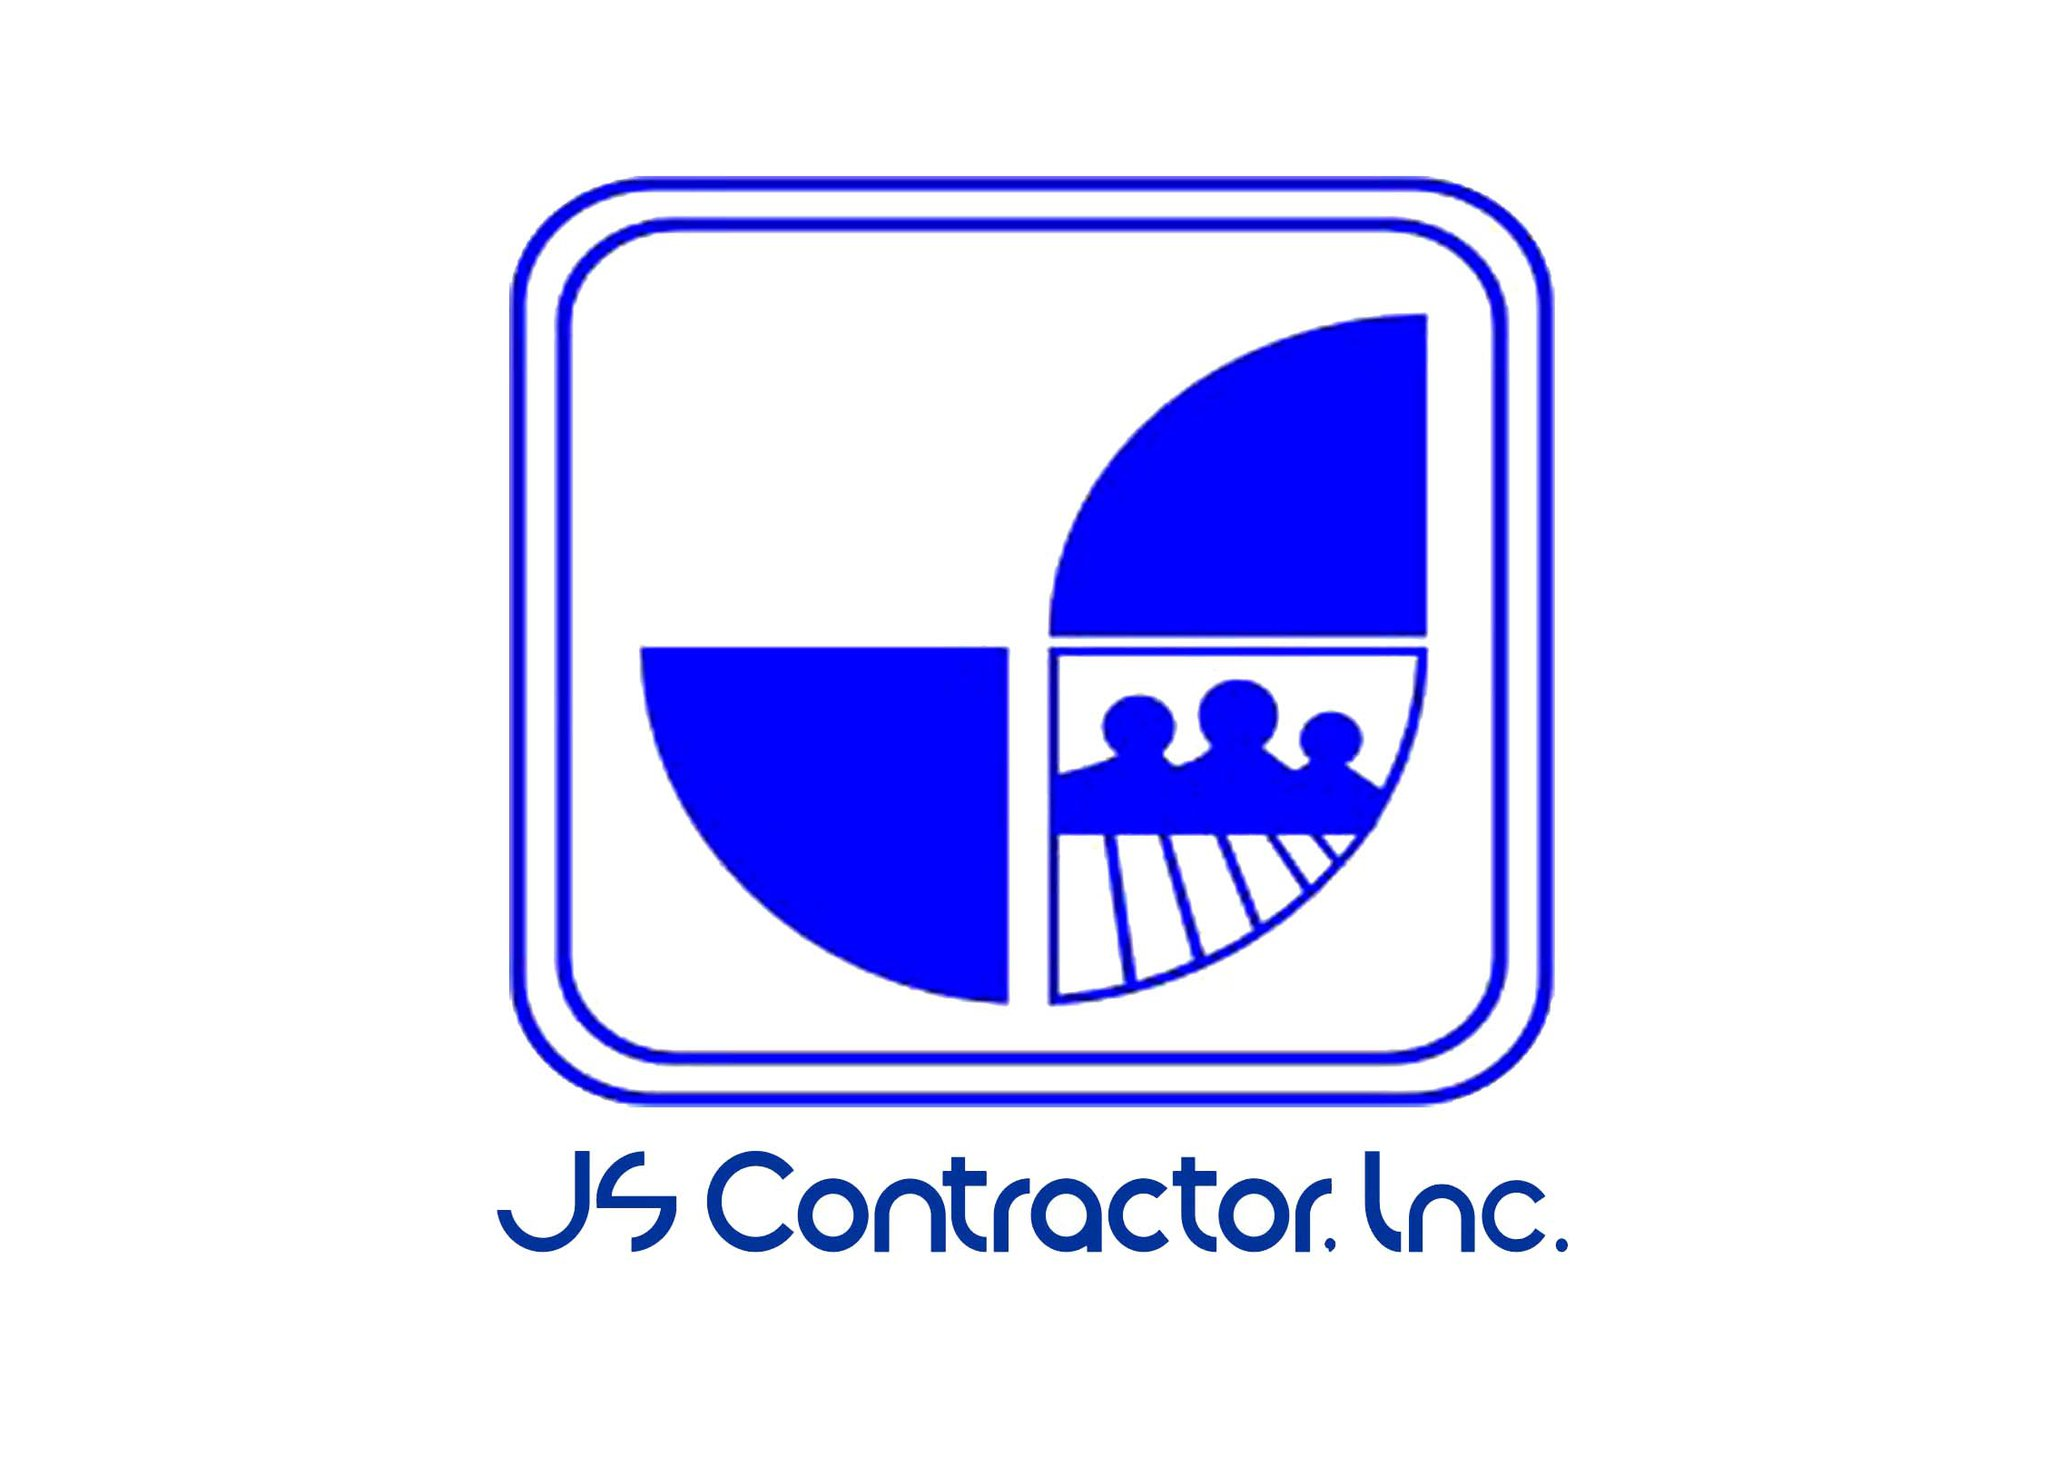 JS Contractor Incorporated (JSCI)